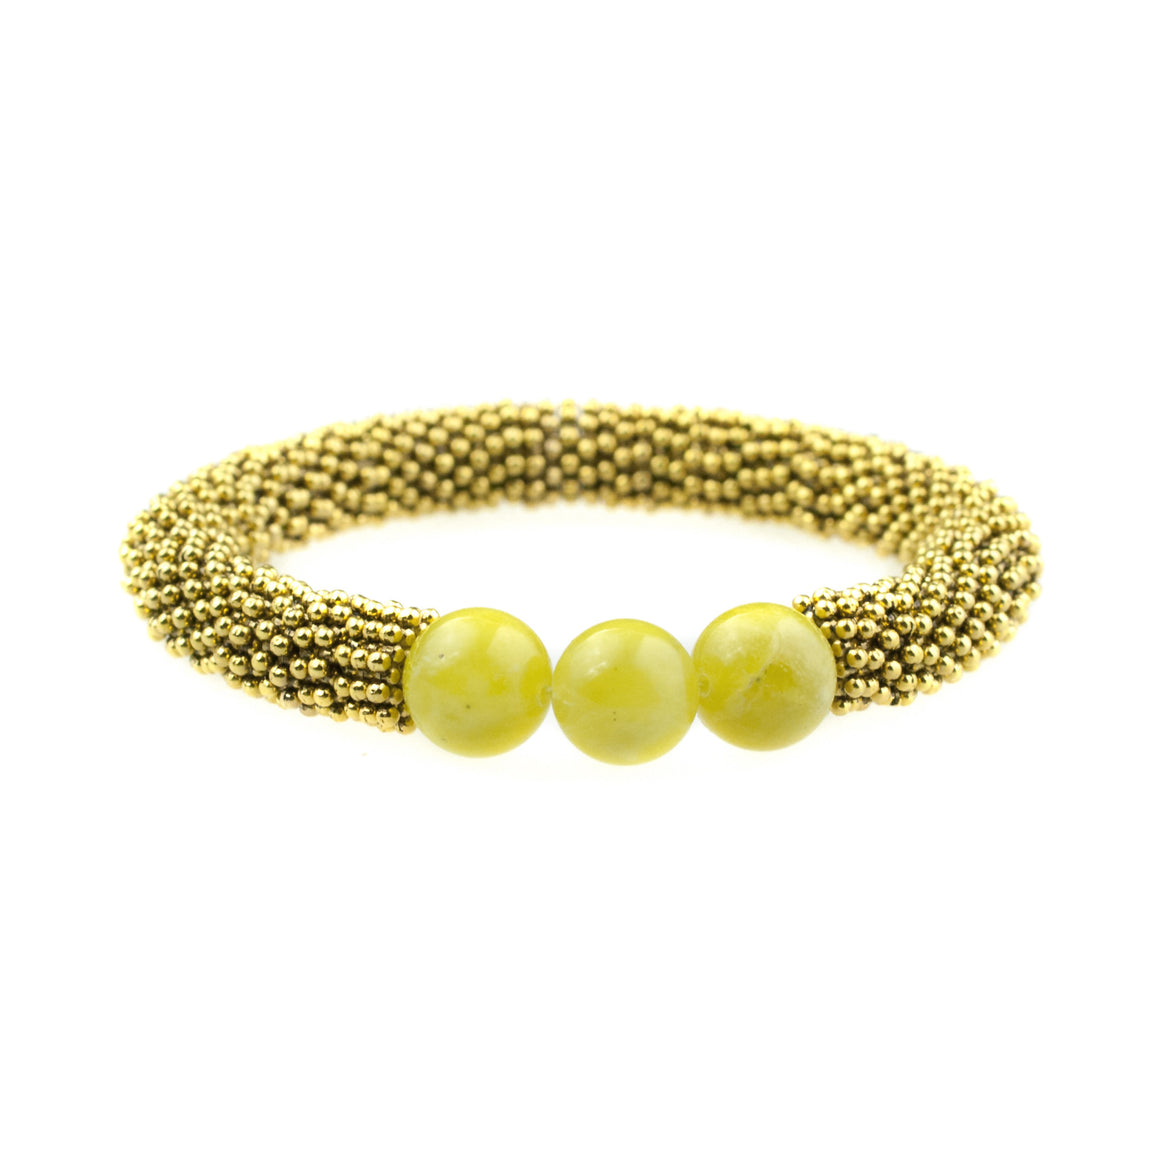 August Accent Bracelet In Gold